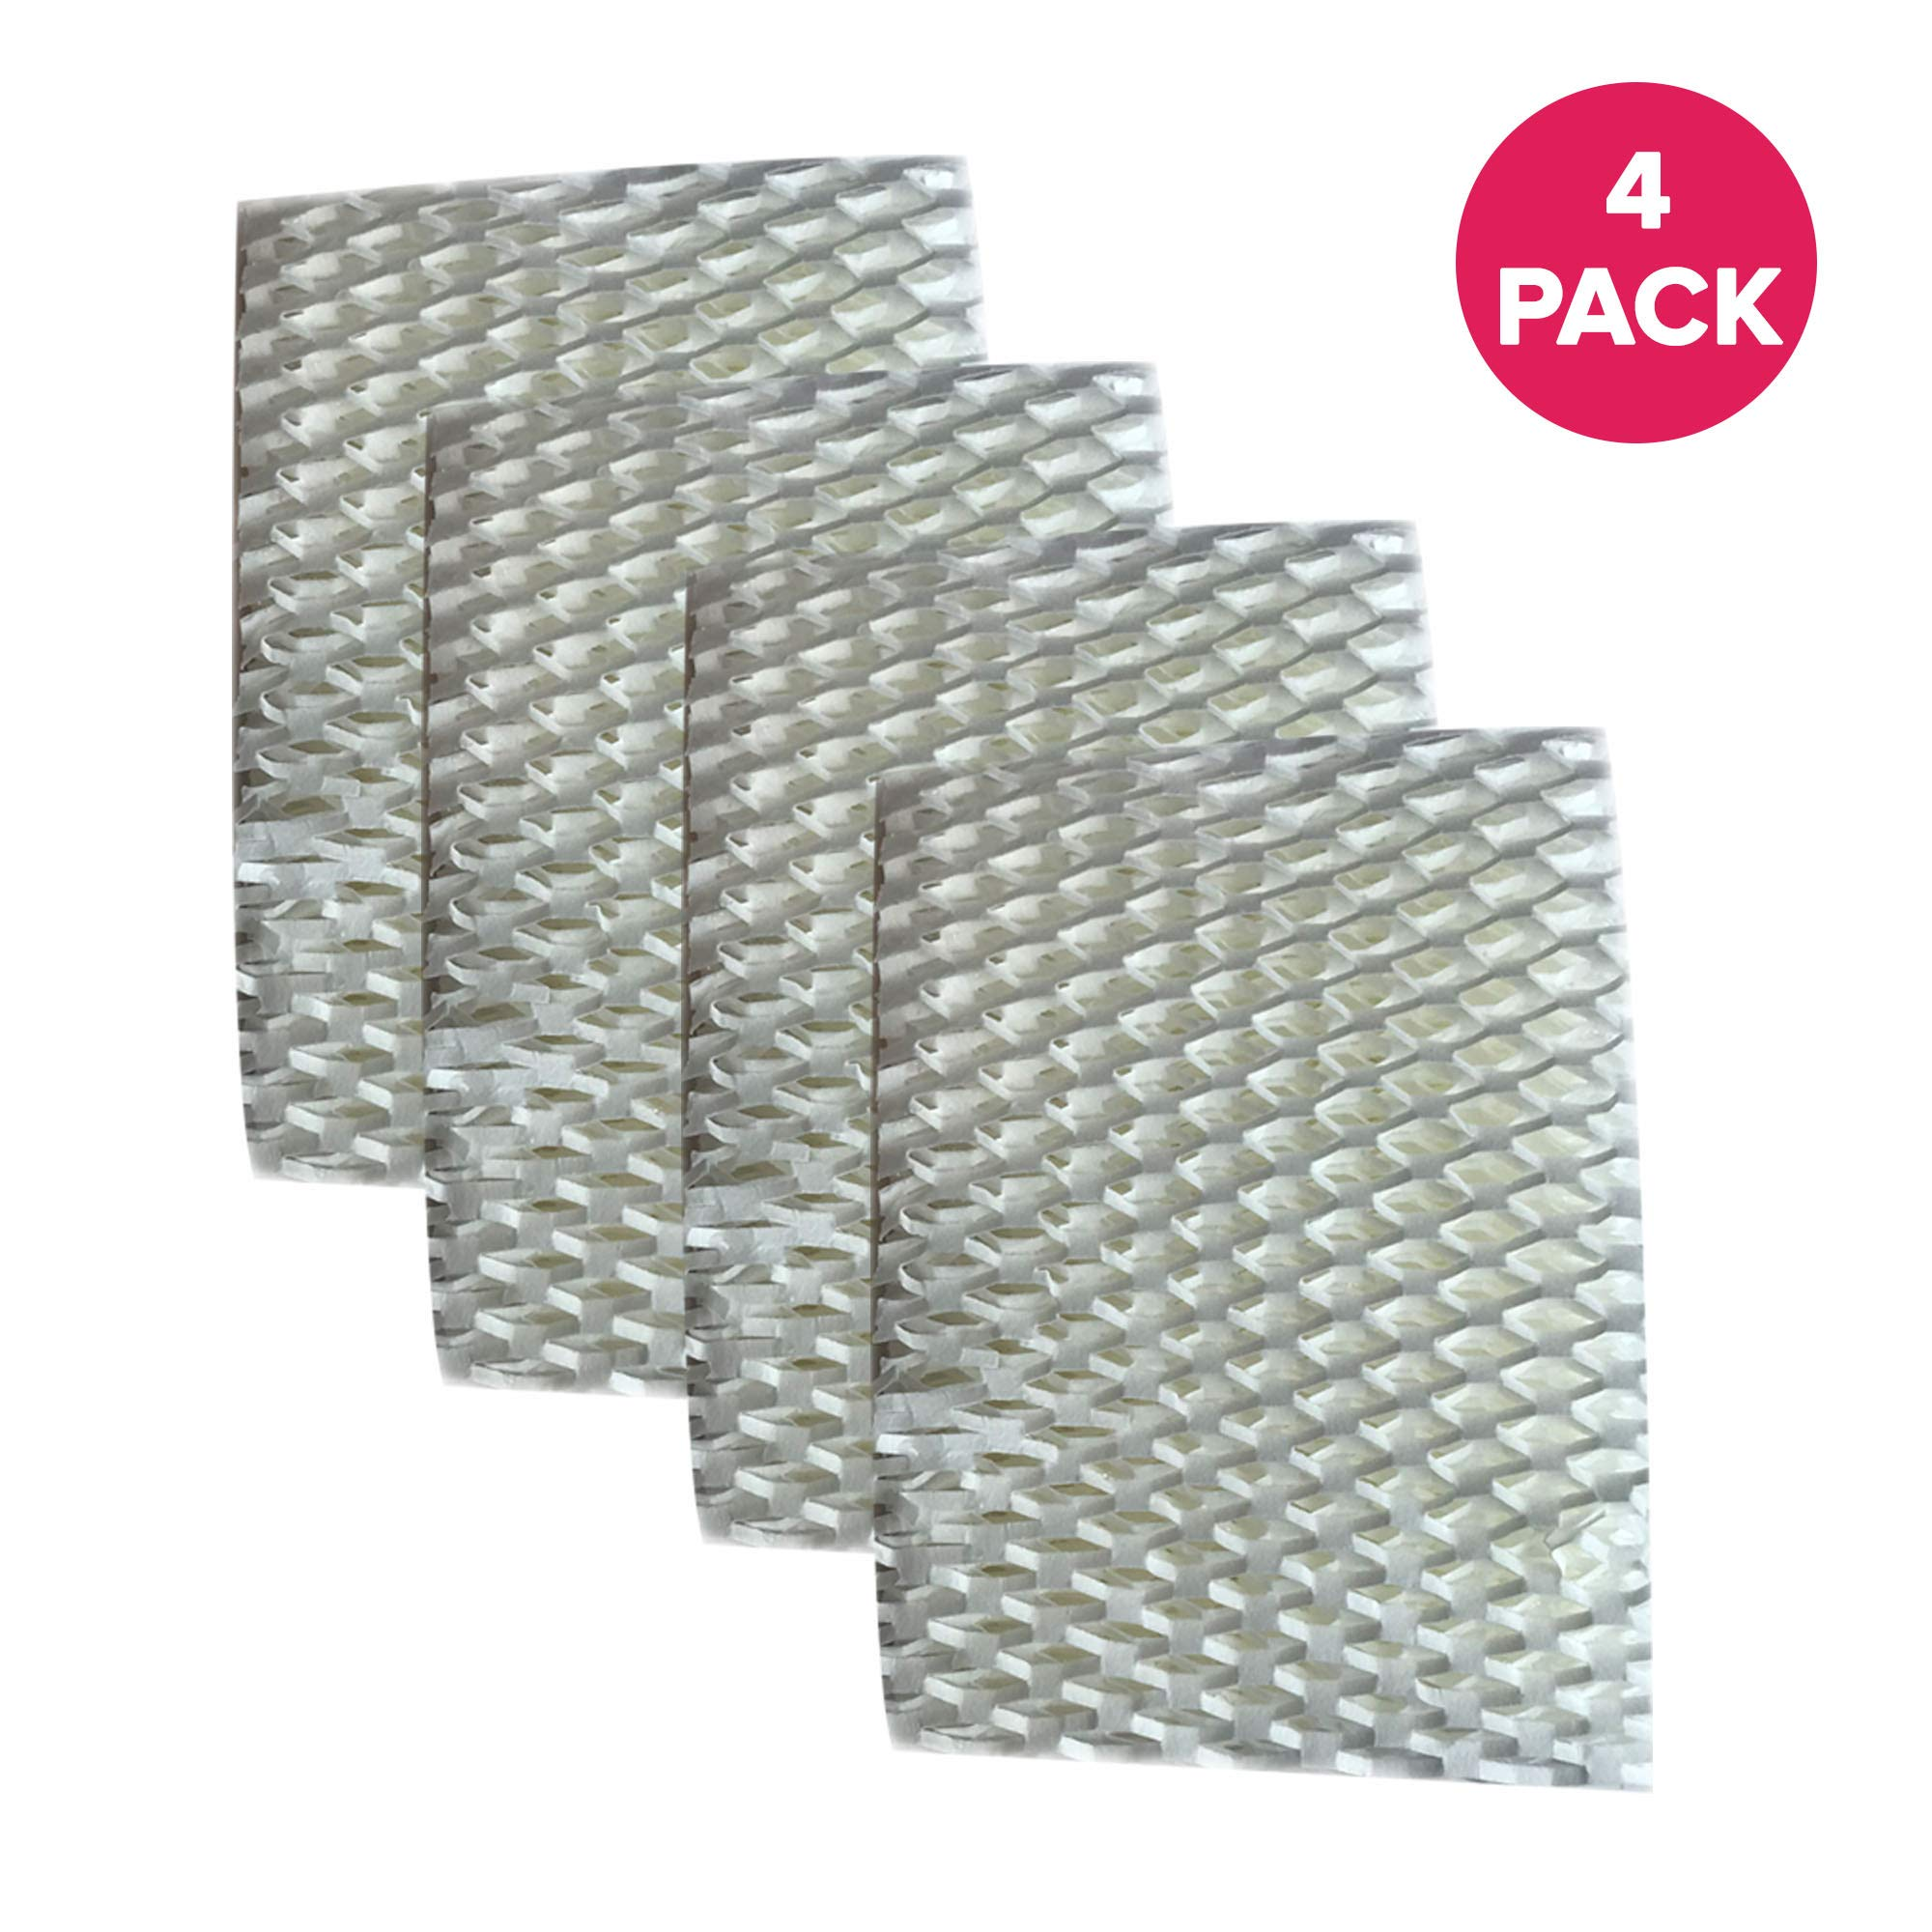 Crucial Air Filter Replacement Parts Compatible with ReliOn Part # WF813 - Fits ReliOn WF813 2-Pack Humidifier Wicking Filters, Fits ReliOn RCM832 (RCM-832) RCM-832N, DH-832 and DH-830 Vac (4 Pack) by Crucial Air